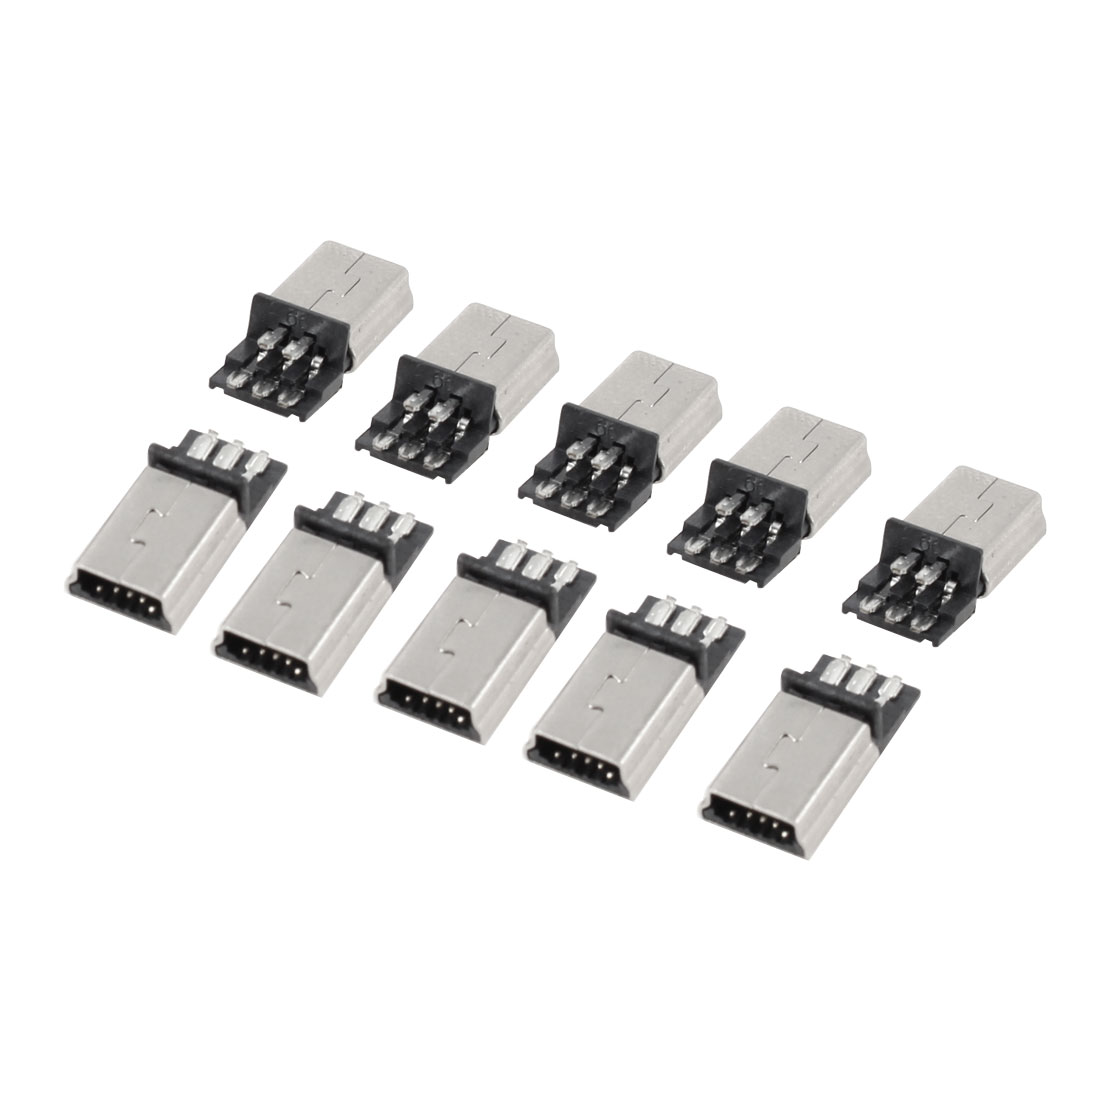 10 x Mini USB 5 Pin Type B Male Connector Port Solder Plug for PCB